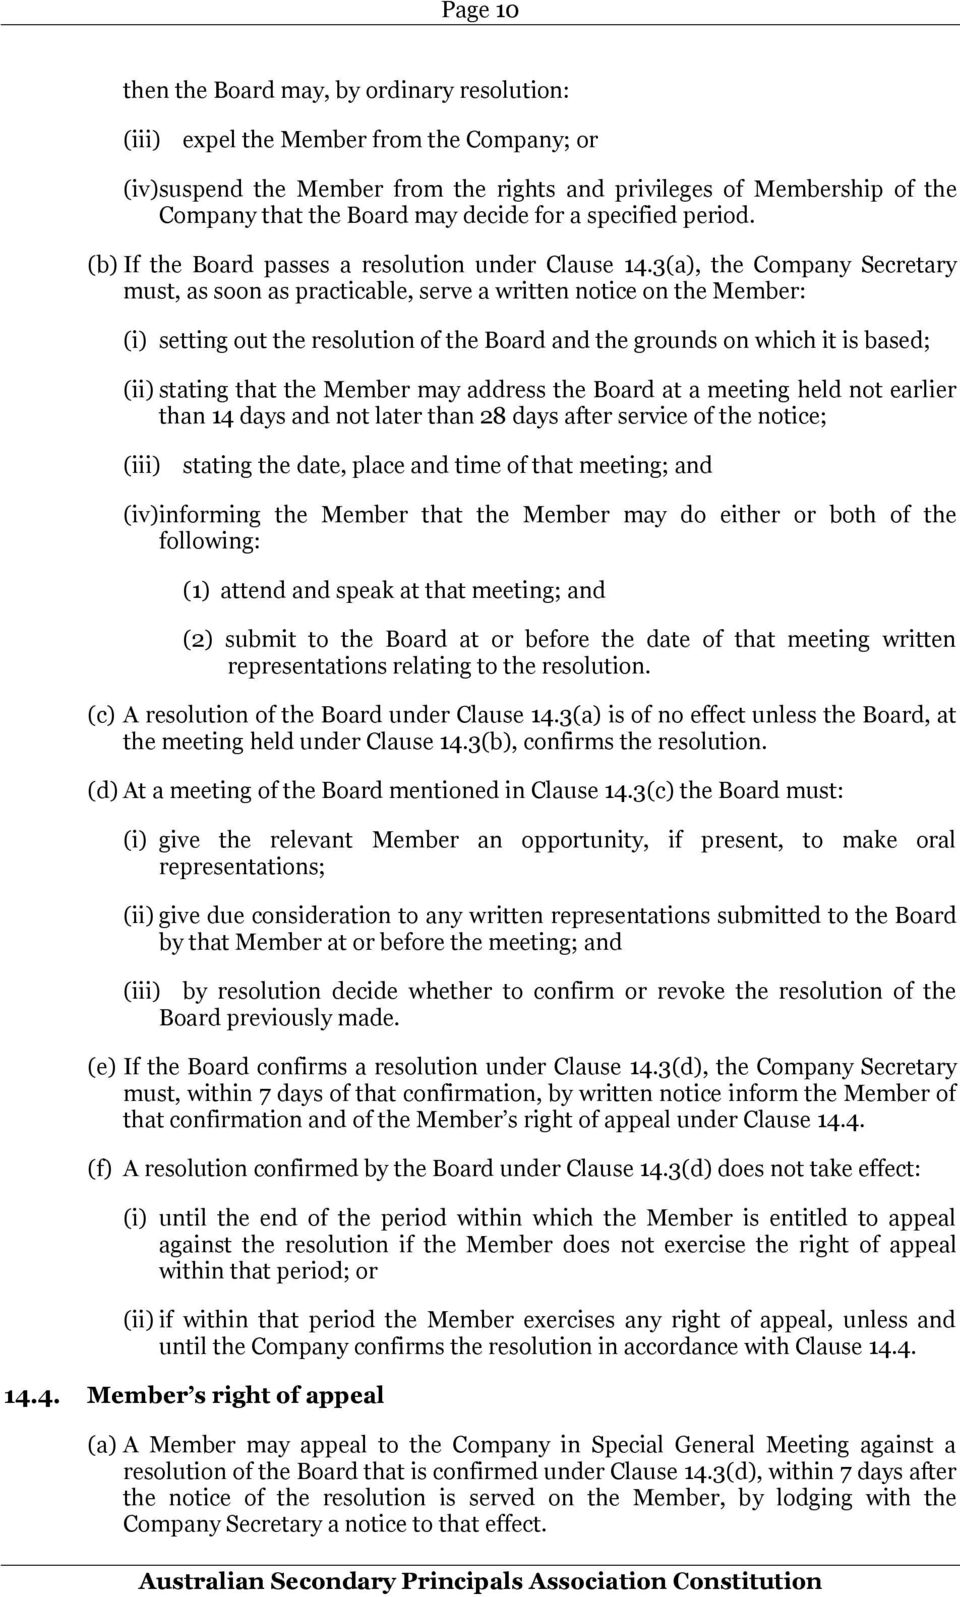 3(a), the Company Secretary must, as soon as practicable, serve a written notice on the Member: (i) setting out the resolution of the Board and the grounds on which it is based; (ii) stating that the